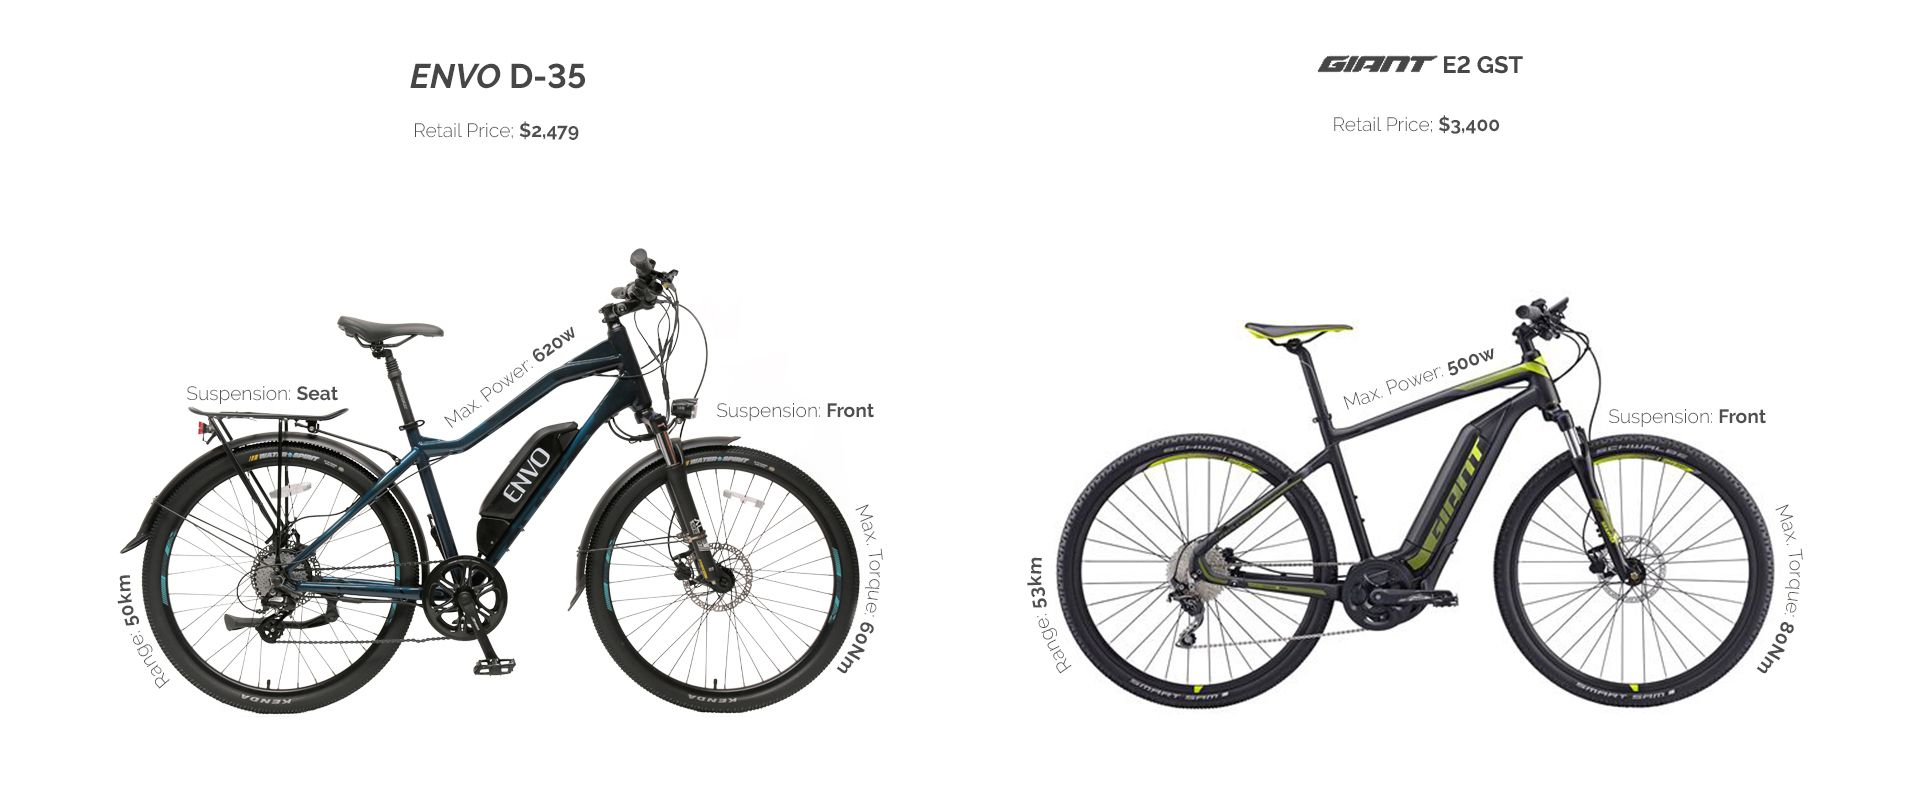 Envo D35 2020 Electric Bike Vs Giant Explore E 2 Gts In 2020